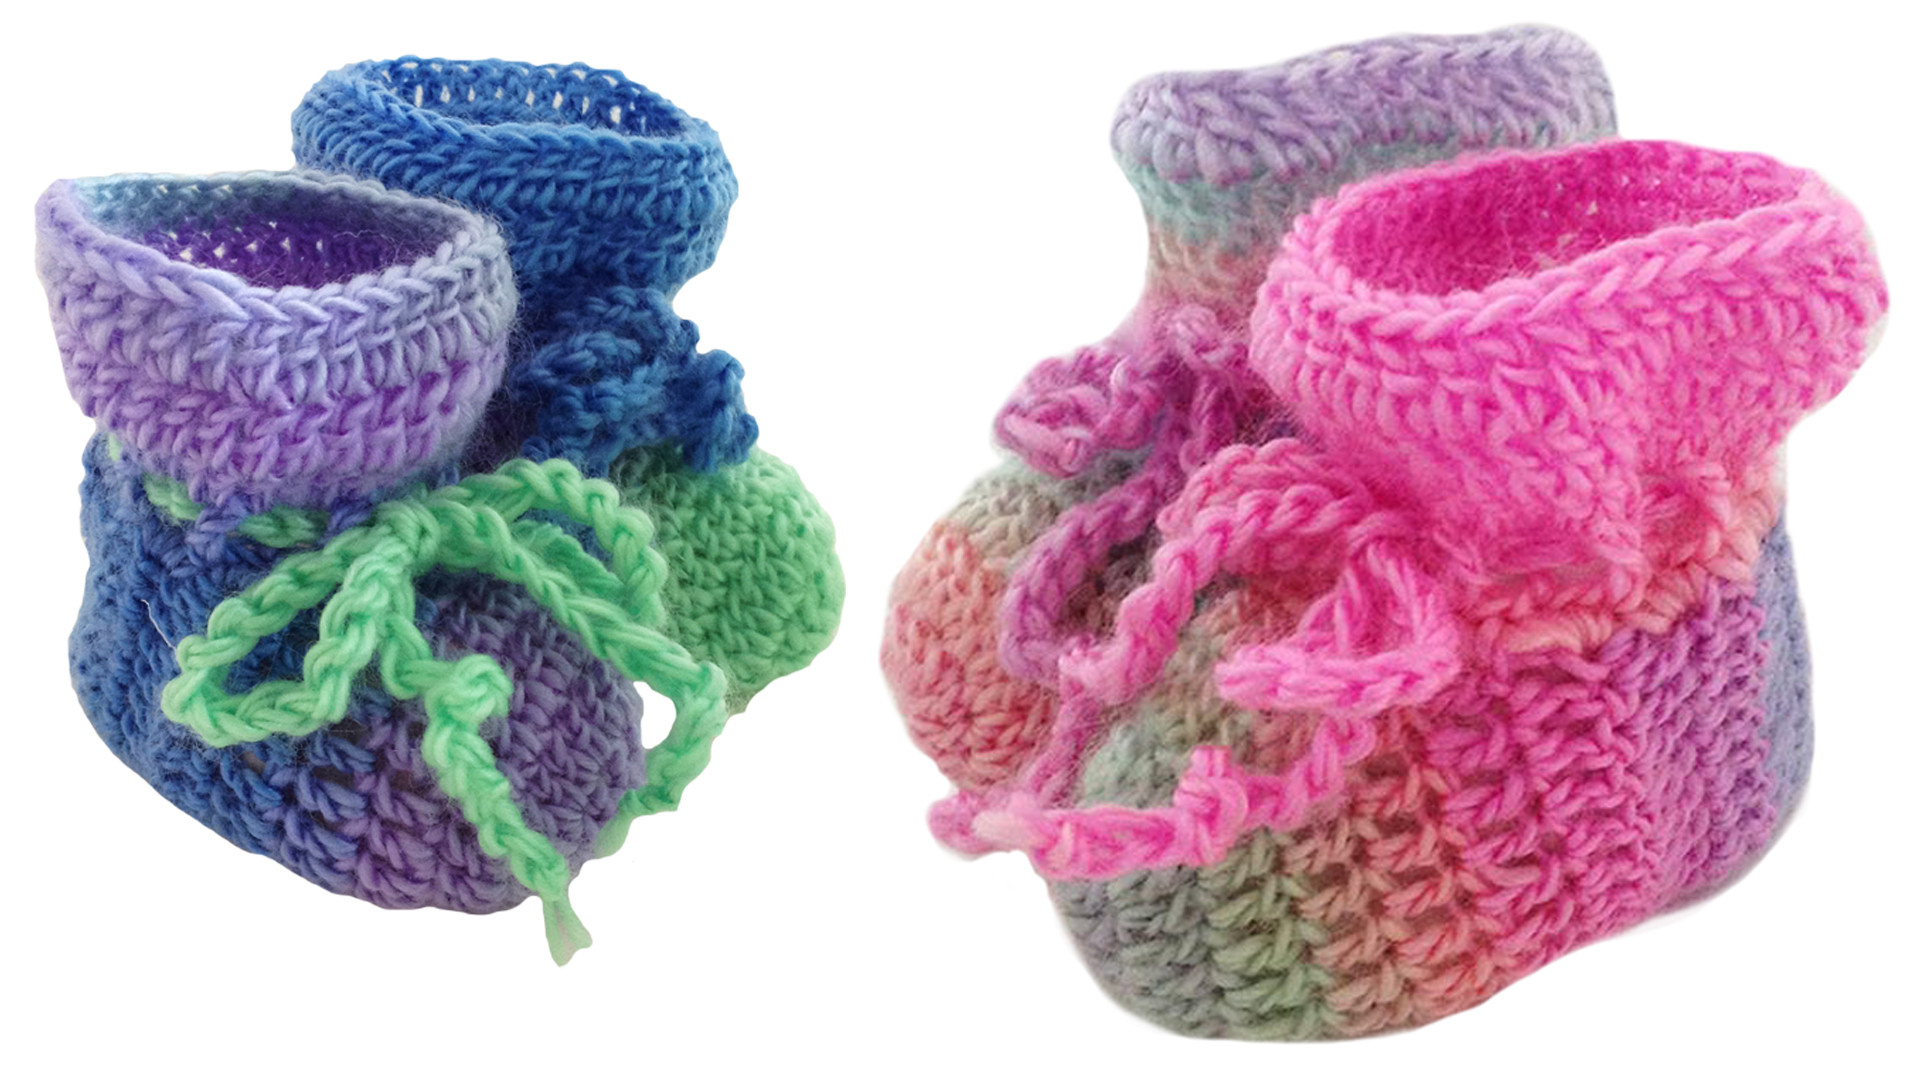 Unique Mother's Day – 5 Free Crochet Baby Bootie Patterns Crochet Booties Pattern Of Unique 49 Ideas Crochet Booties Pattern